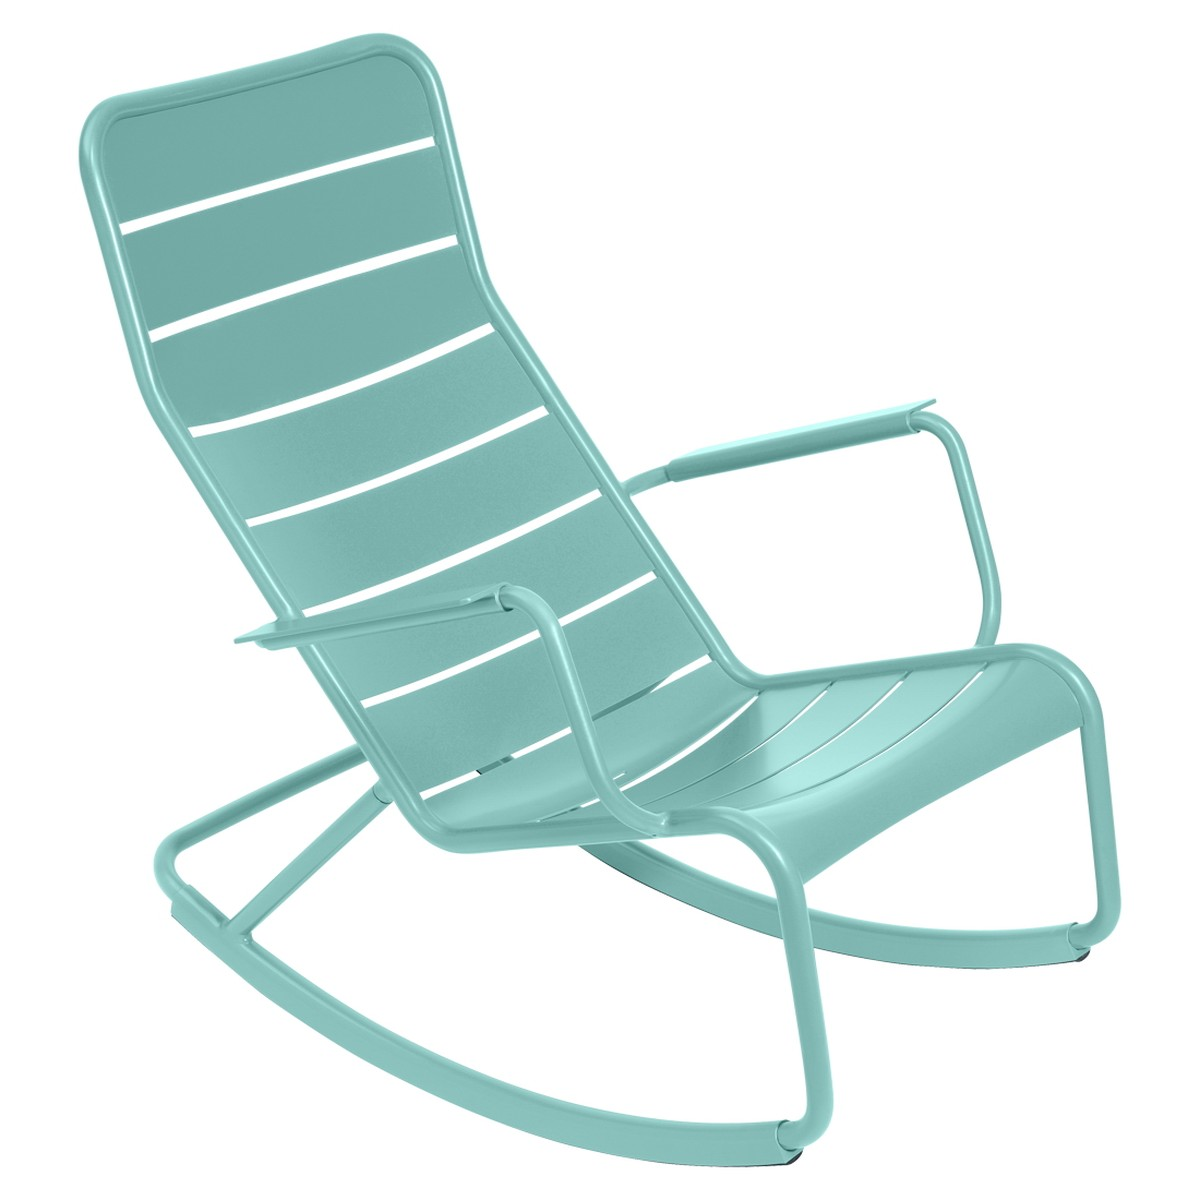 Fermob LUXEMBOURG Rocking Chair Luxembourg Bleu des mers du sud 99x50x69.5cm